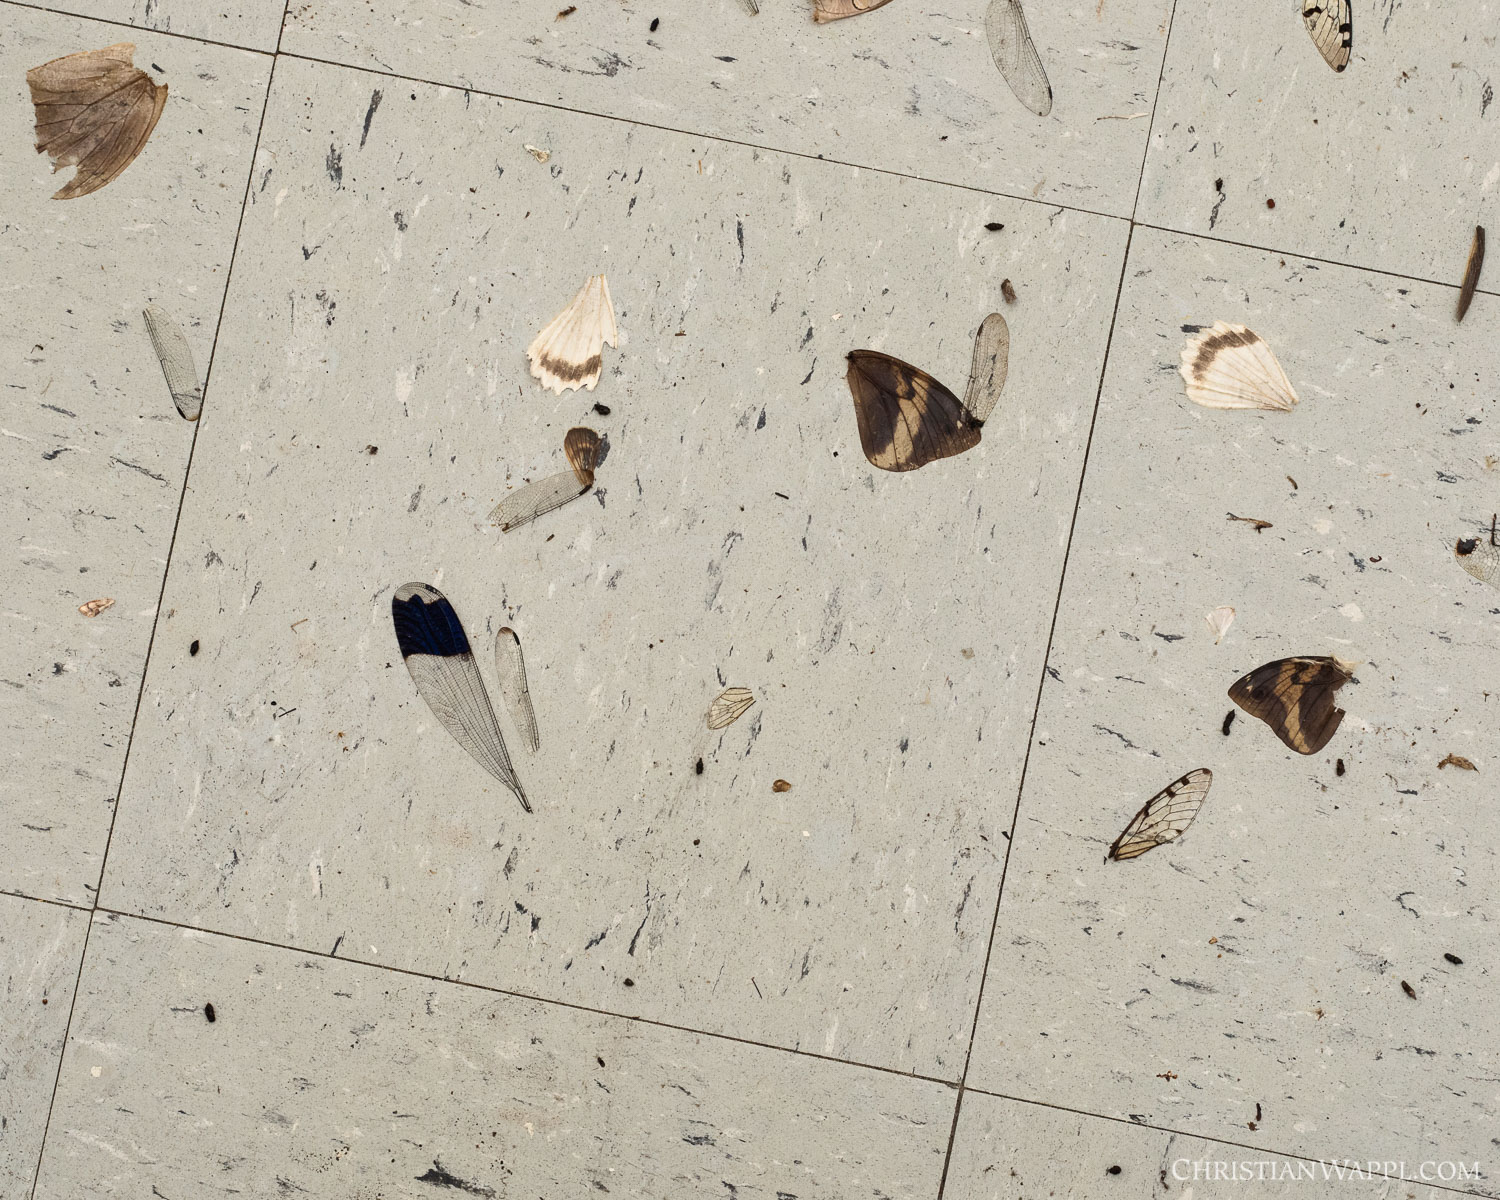 Remains of insects devoured by bats inside an army barracks, Panama